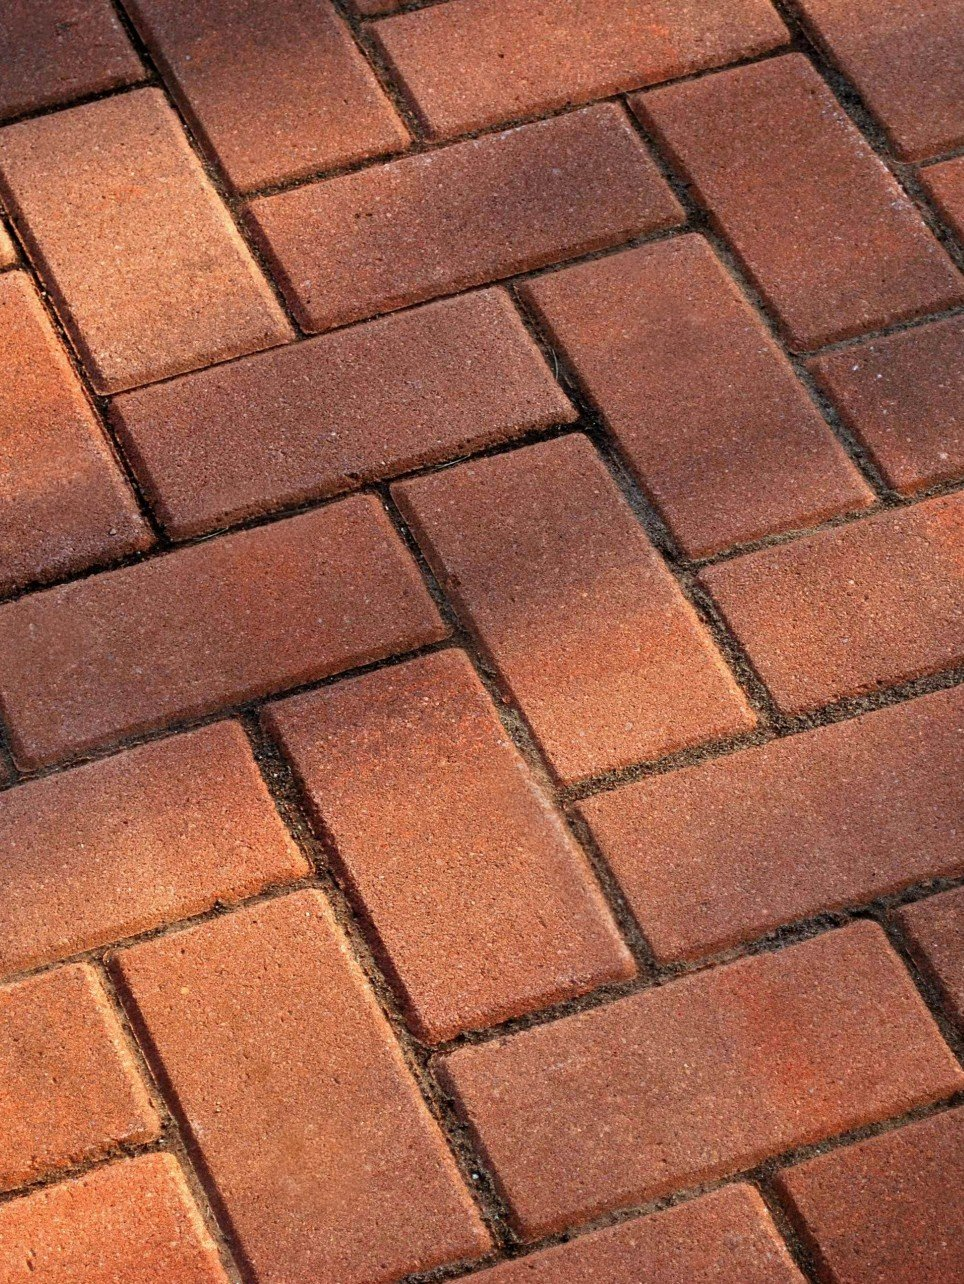 Block Paving Companies Brockworth